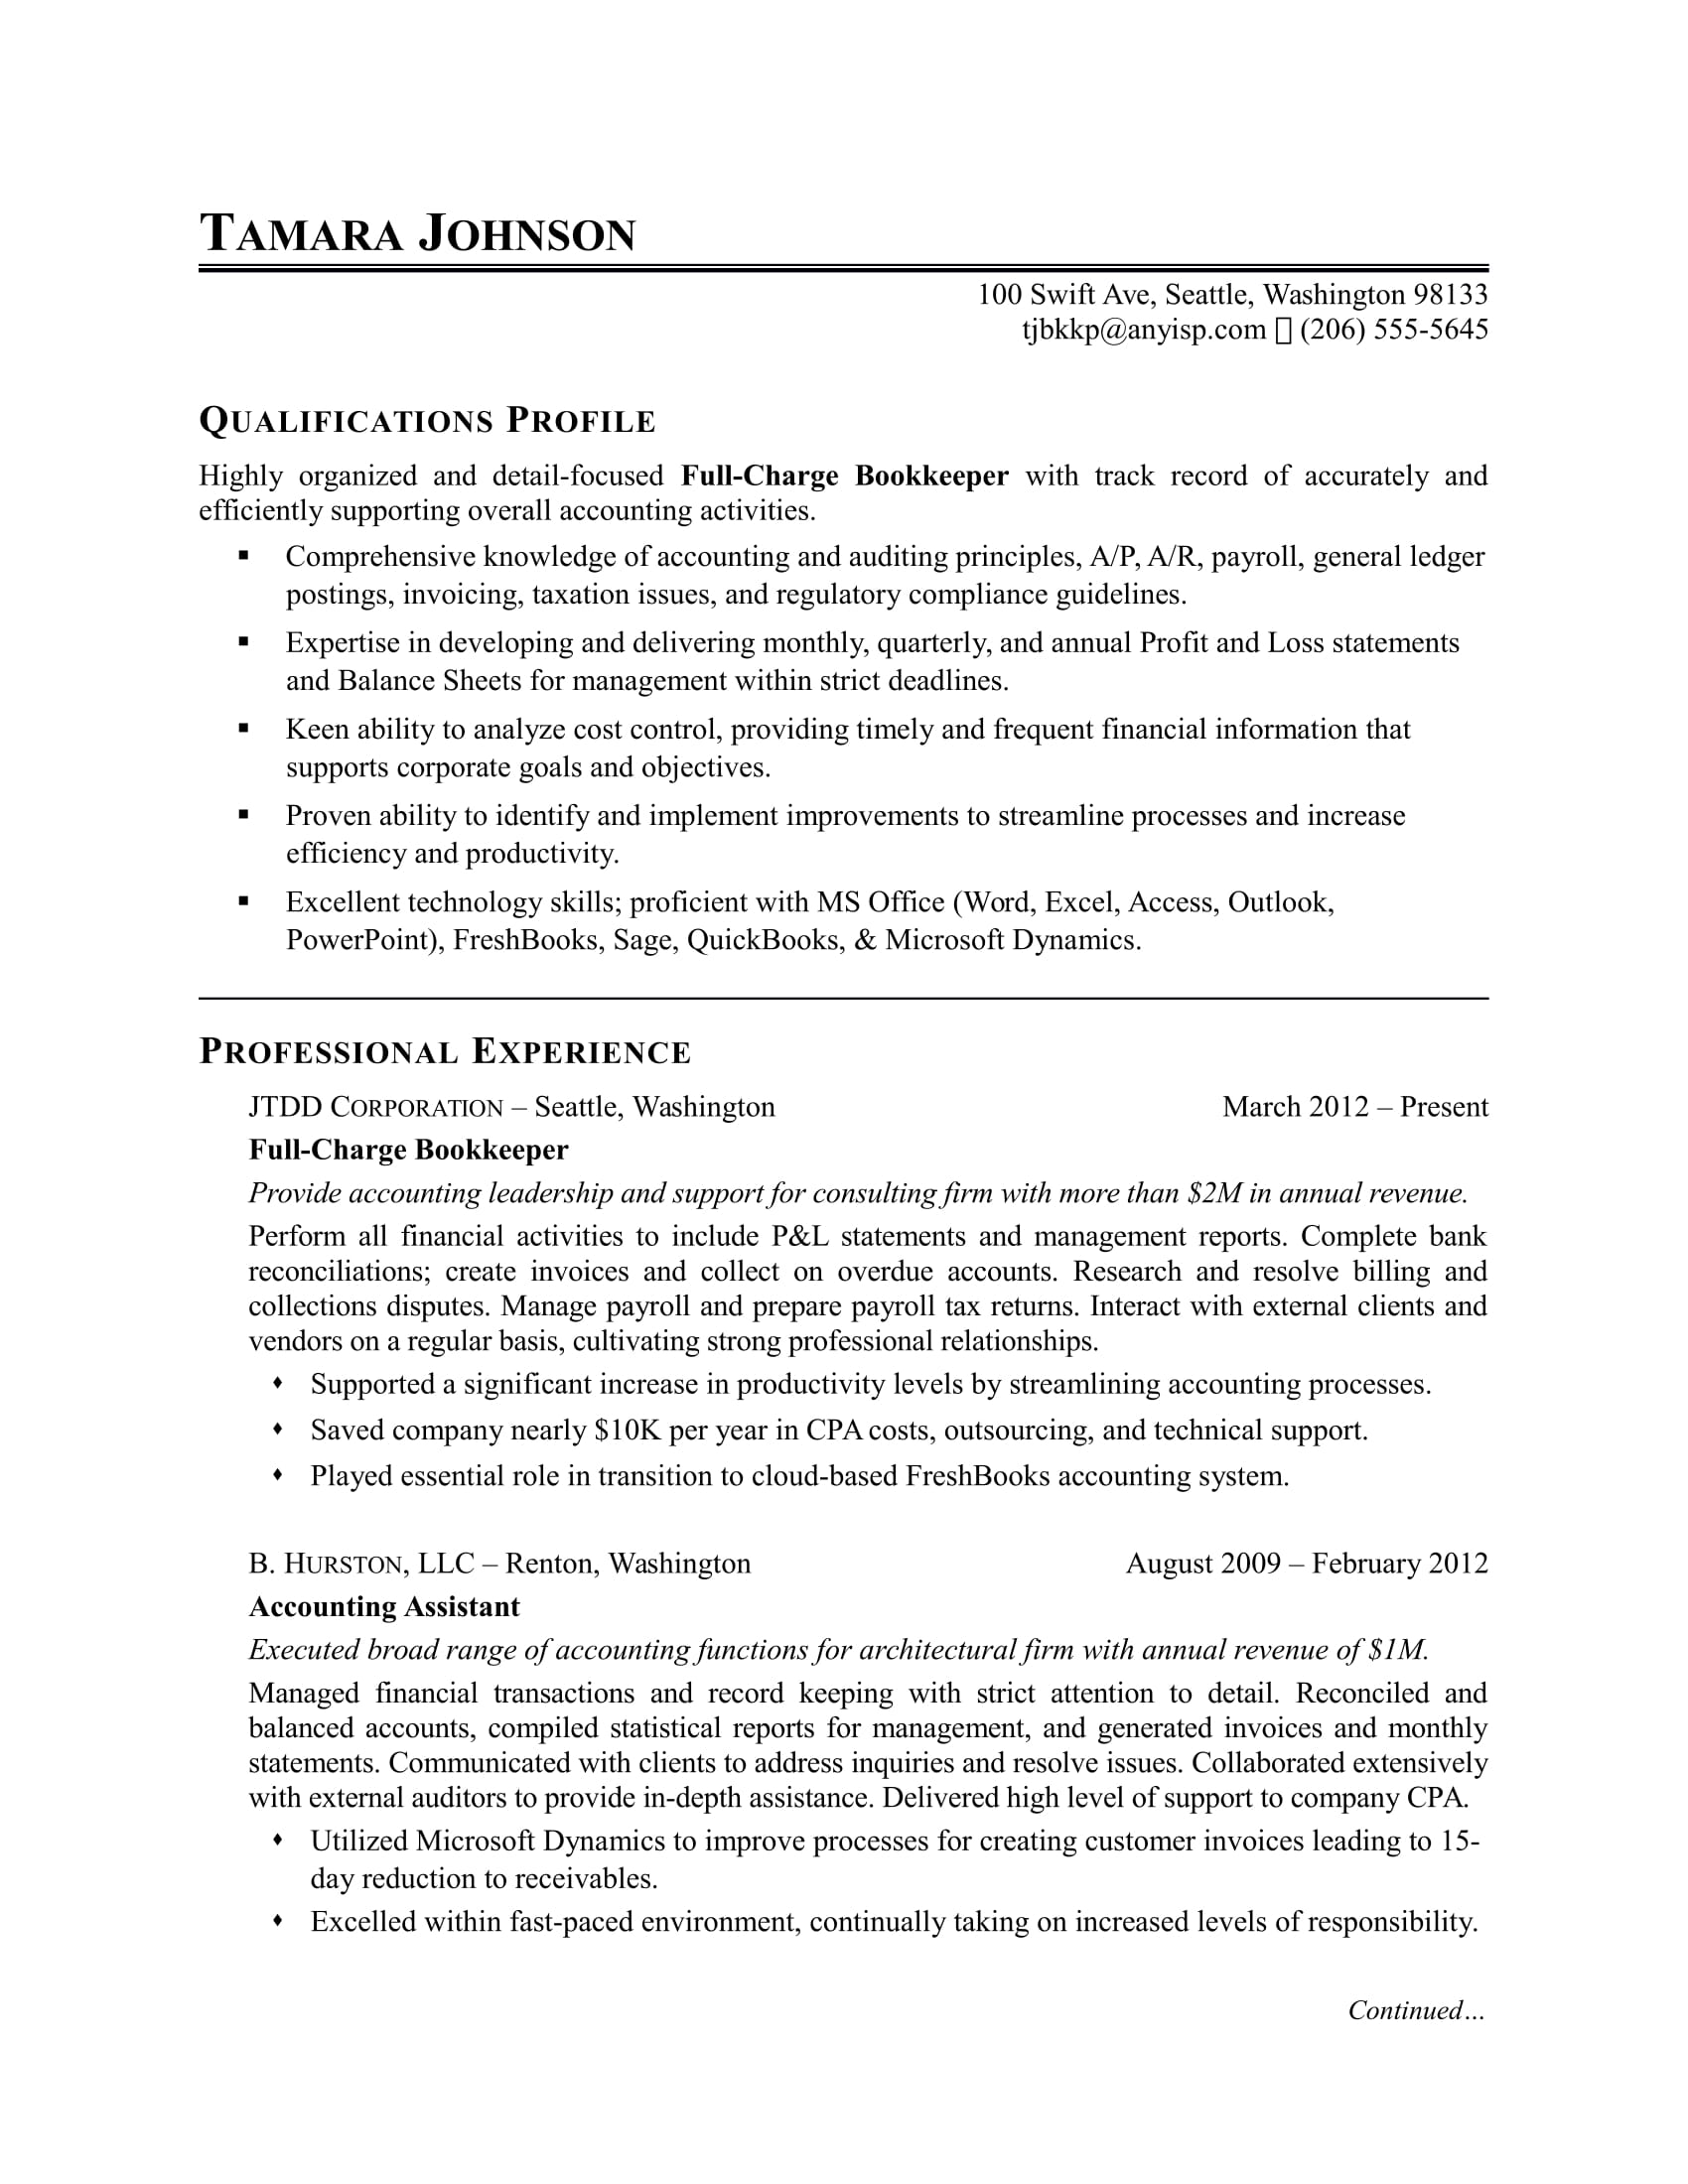 Bookkeeper Resume Sample | Monster.com